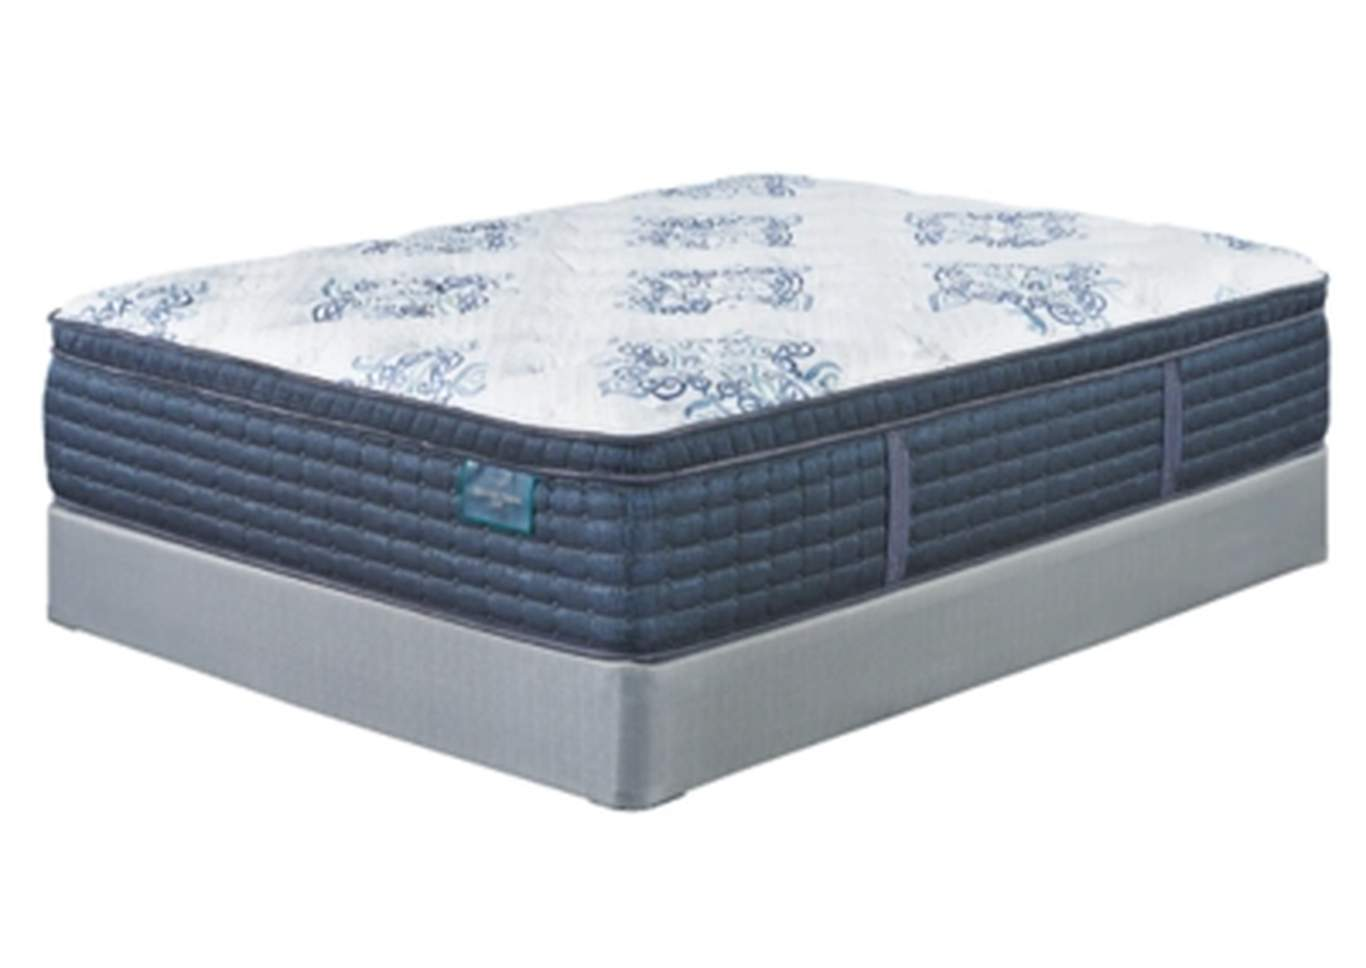 Mt. Dana Euro Top White California King Mattress,Sierra Sleep by Ashley